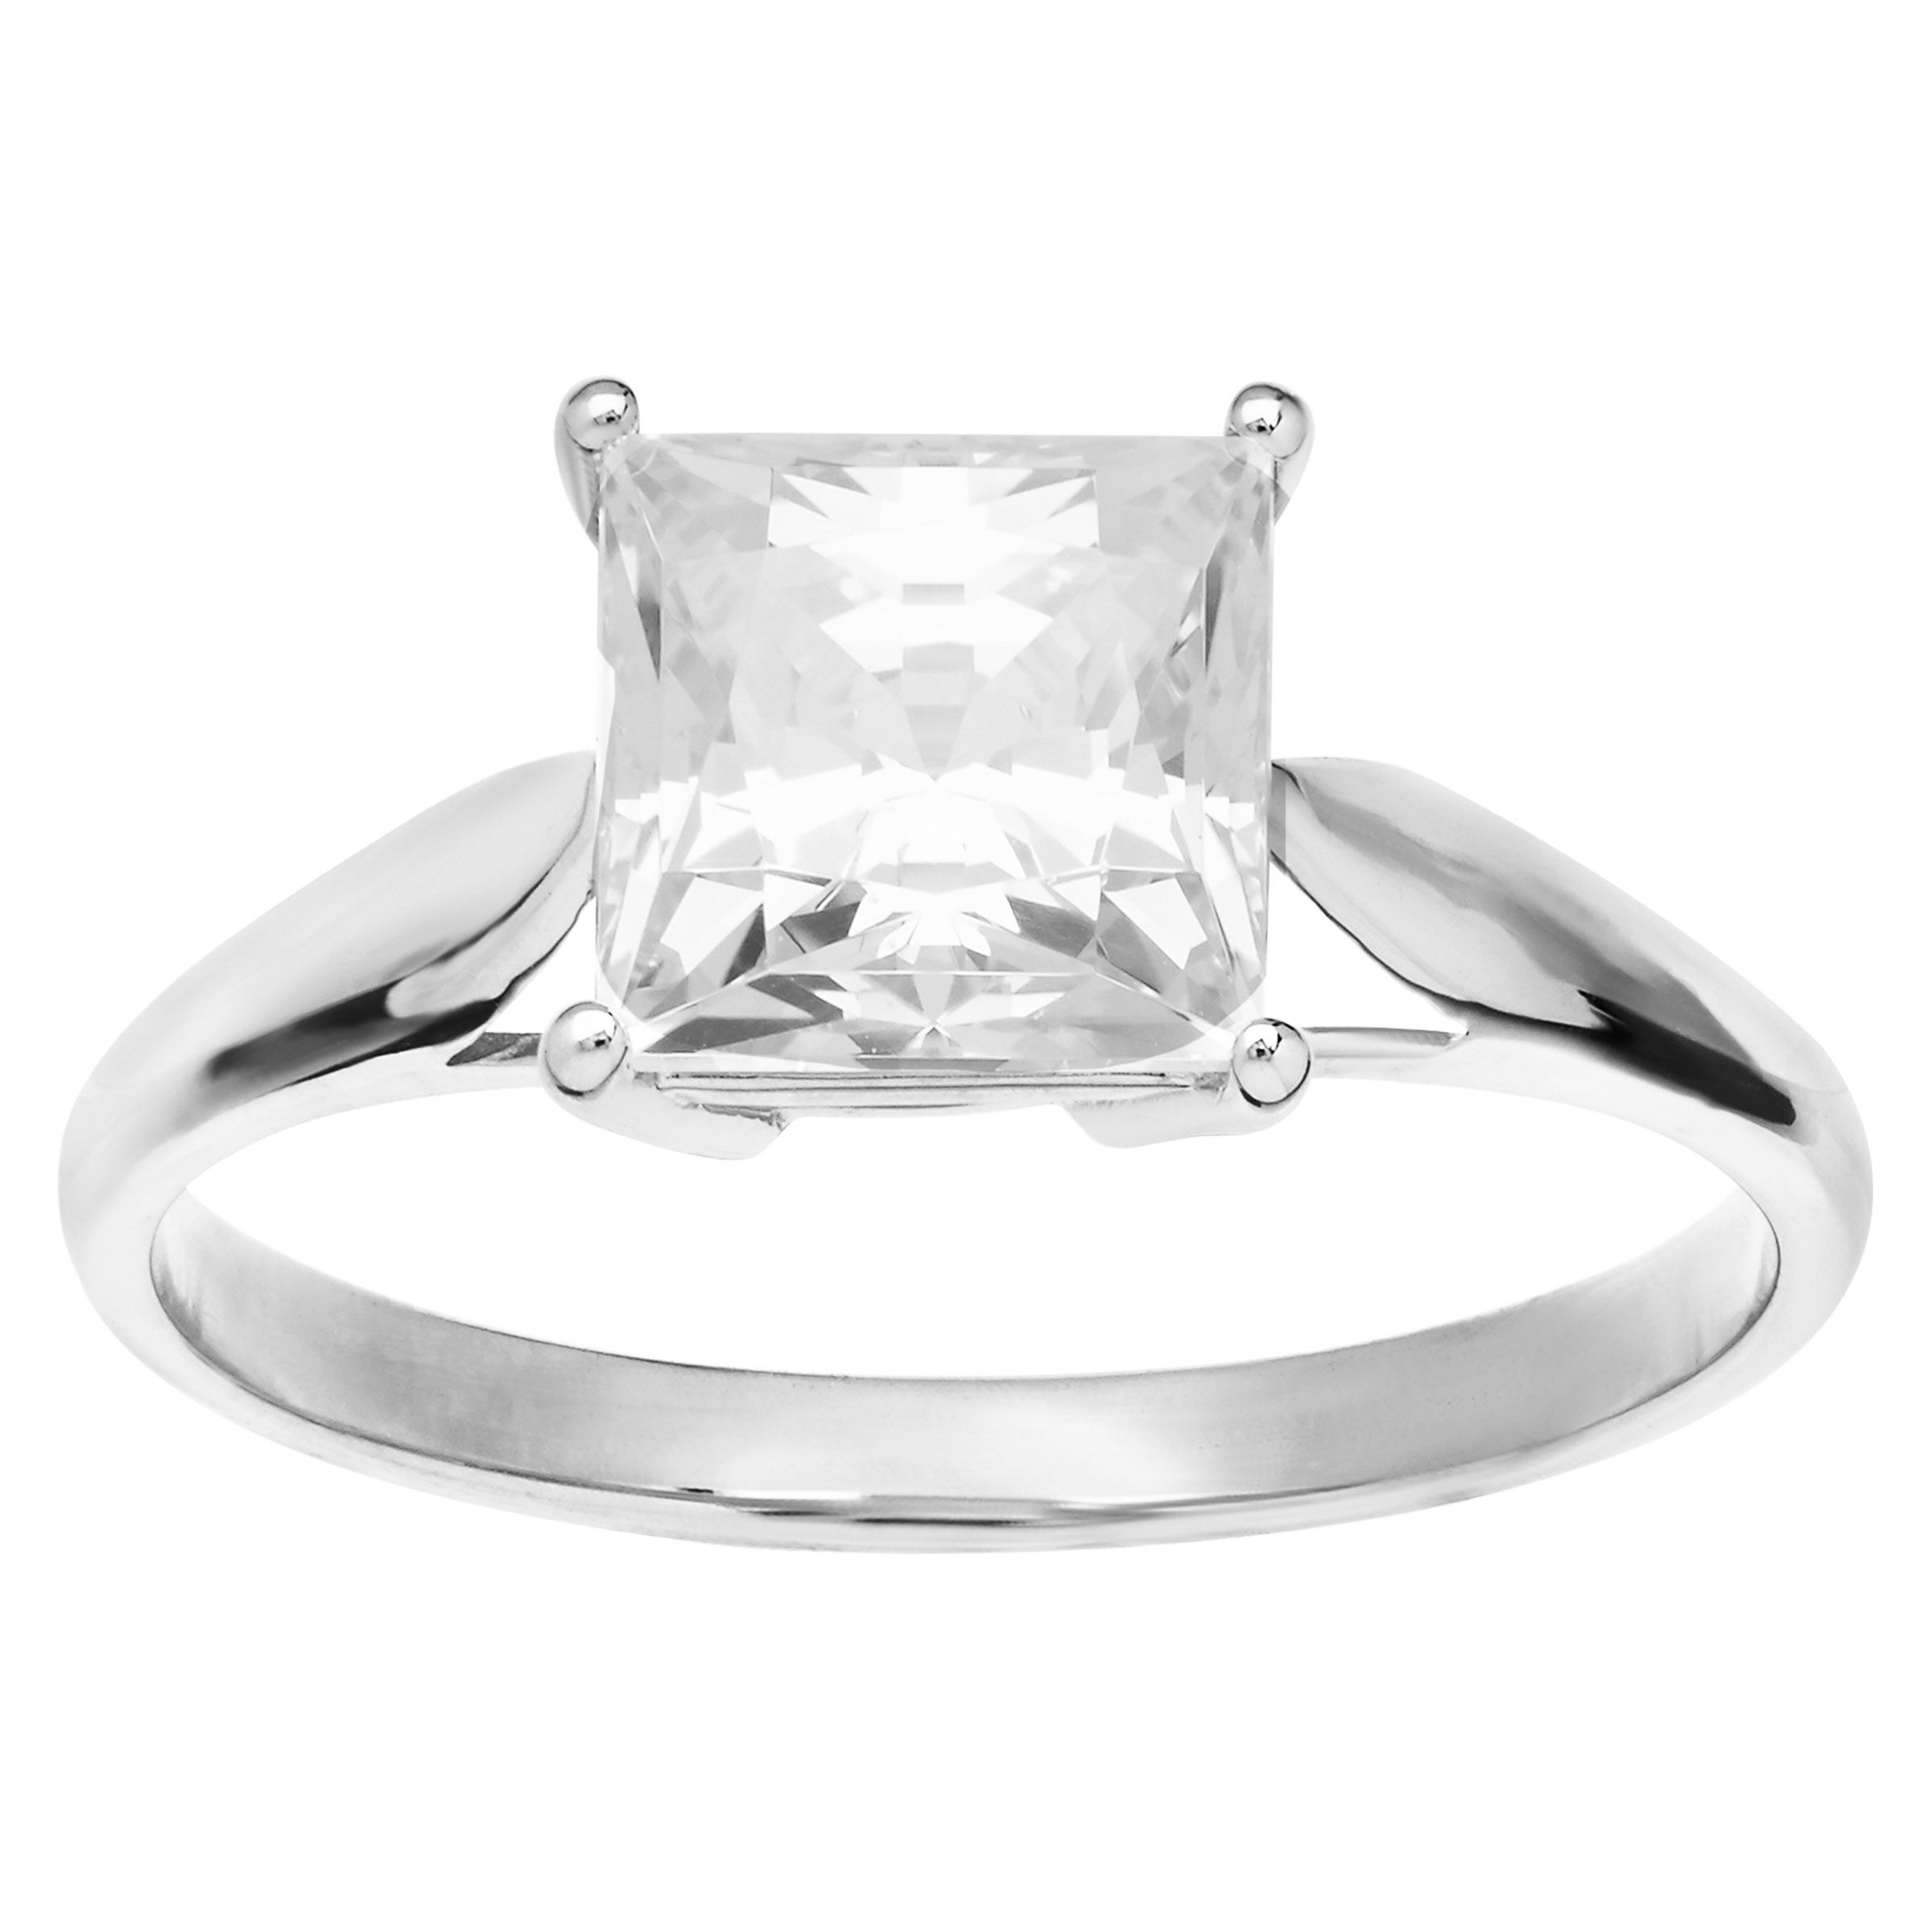 3 Ct Cubic Zirconia Engagement Ring In 10k White Gold Ebay